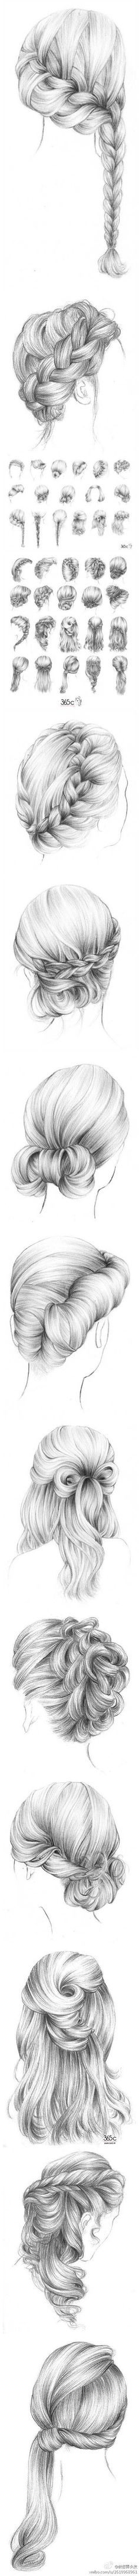 Drawing hair style. Which one is your favorite?